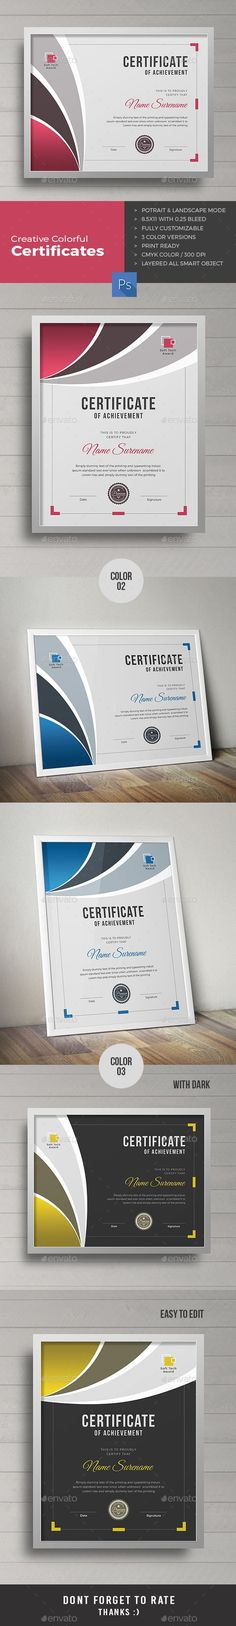 #Certificate.Download here: http://graphicriver.net/item/certificate/15504270?ref=arroganttype: